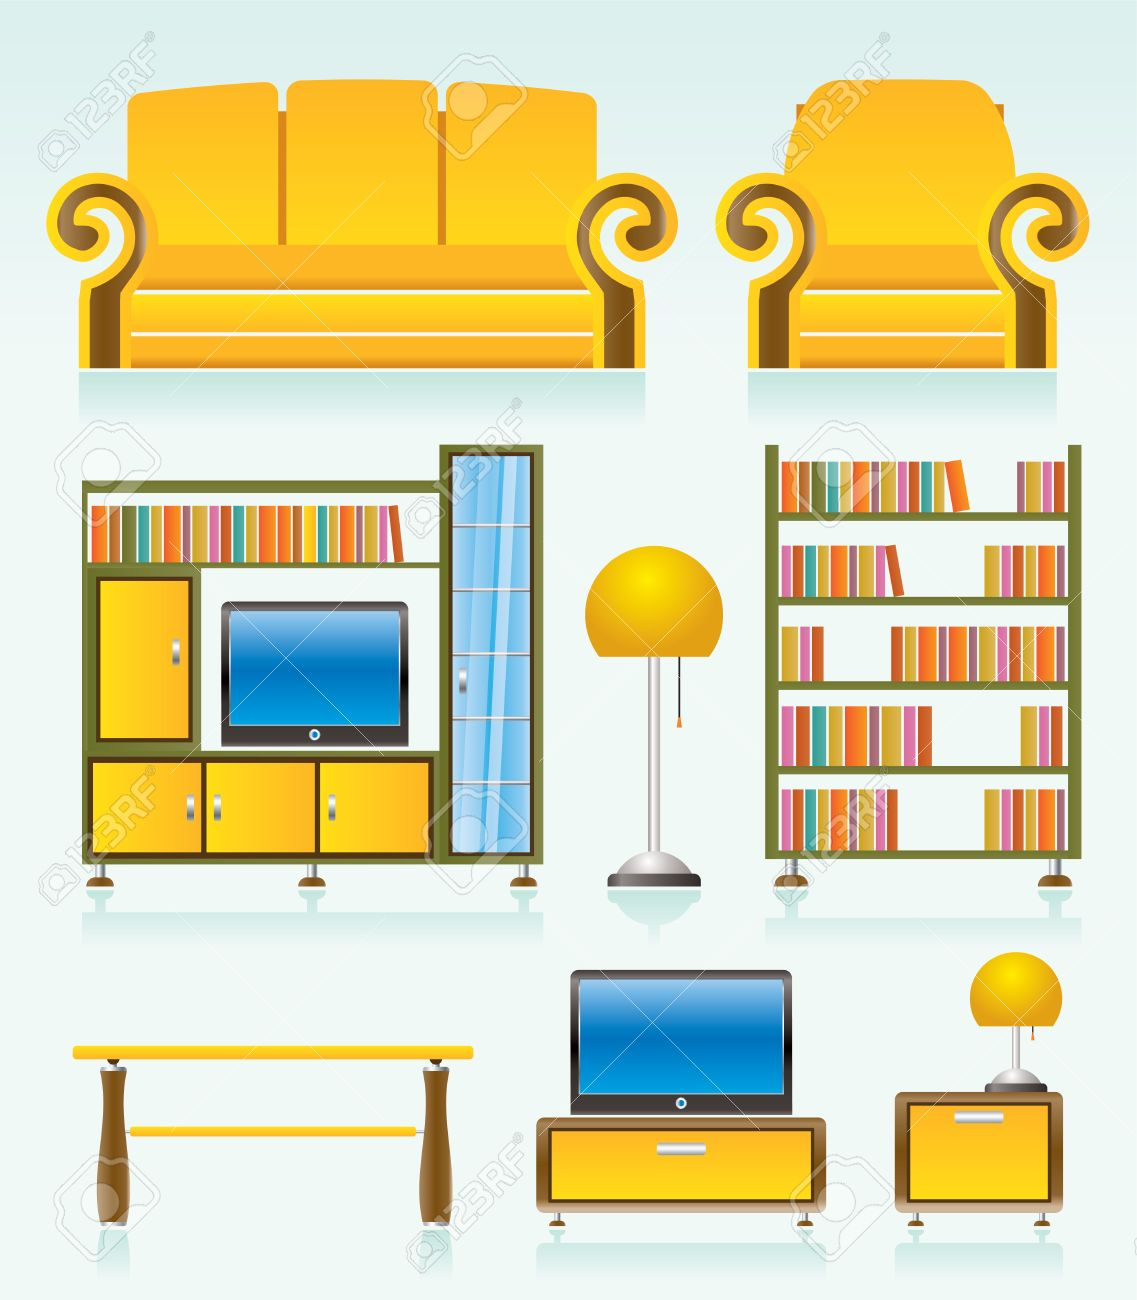 living room objects, furniture and equipment Stock Vector - 8738743